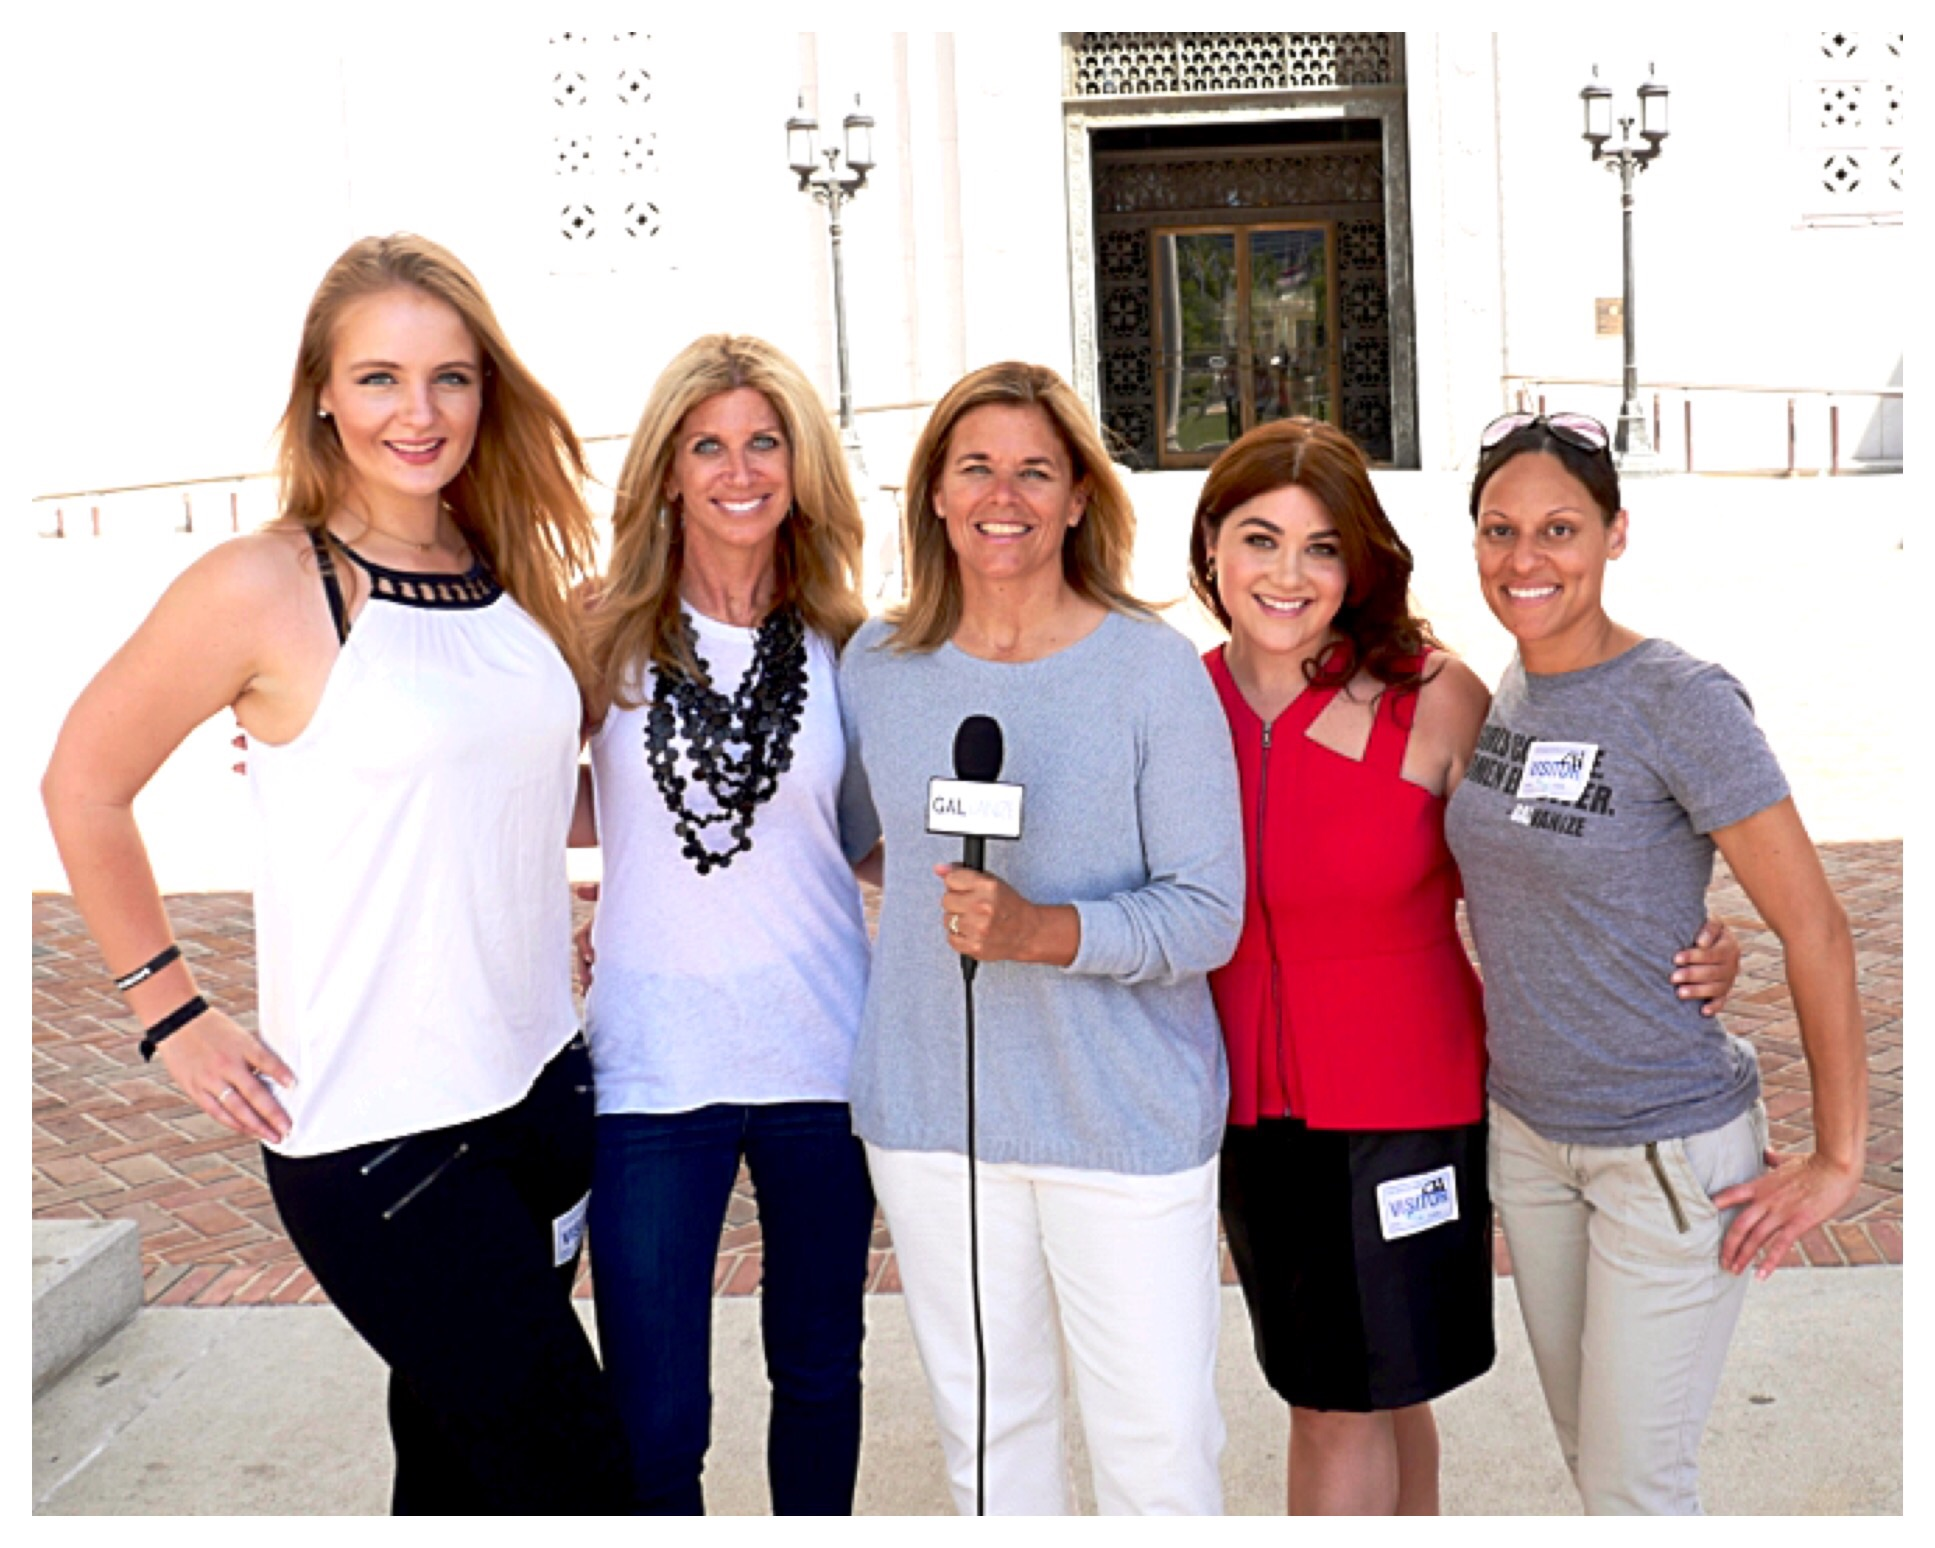 Fox Sports NFL sideline reporter, Laura Okmin, to the left, teaching us how to GALvanize in Los Angeles!